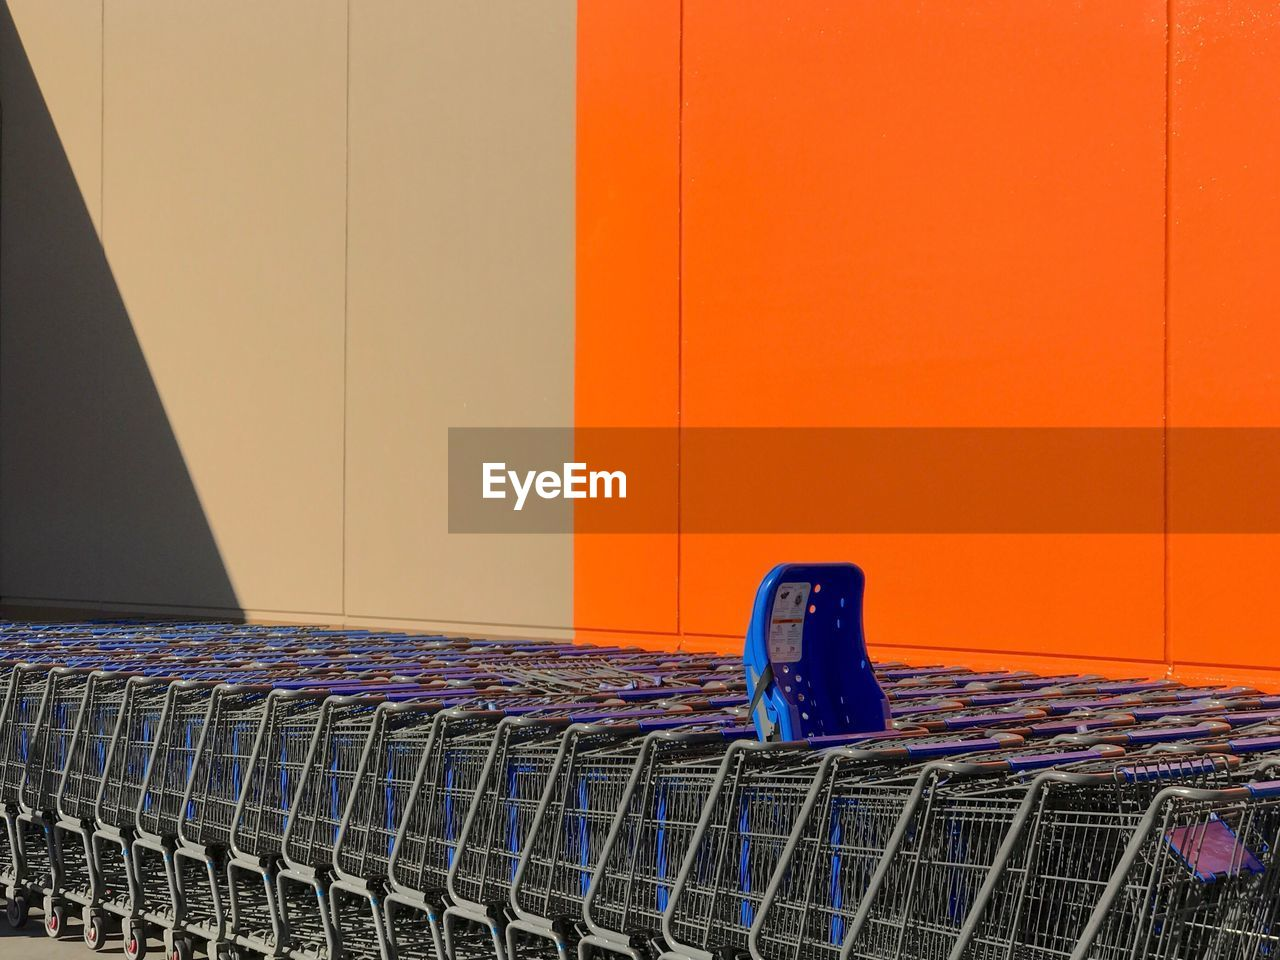 Shopping Carts Against Wall